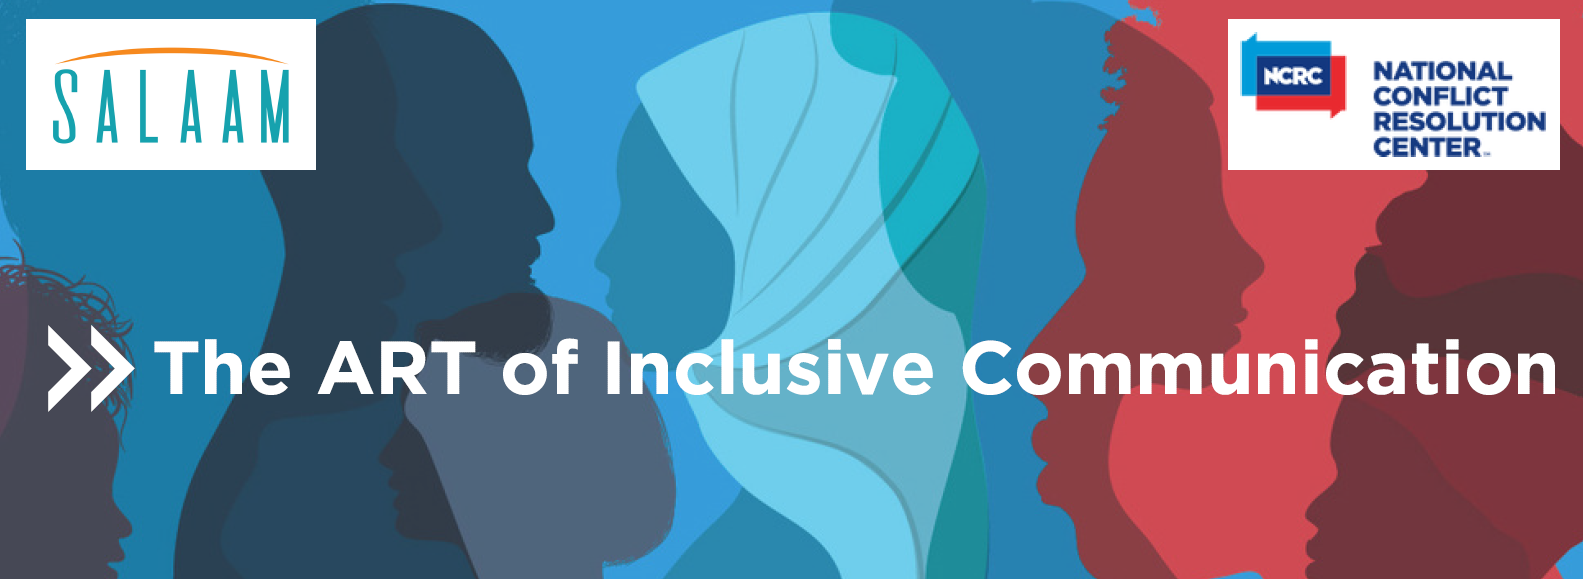 Inclusive communication national conflict resolution center salaam